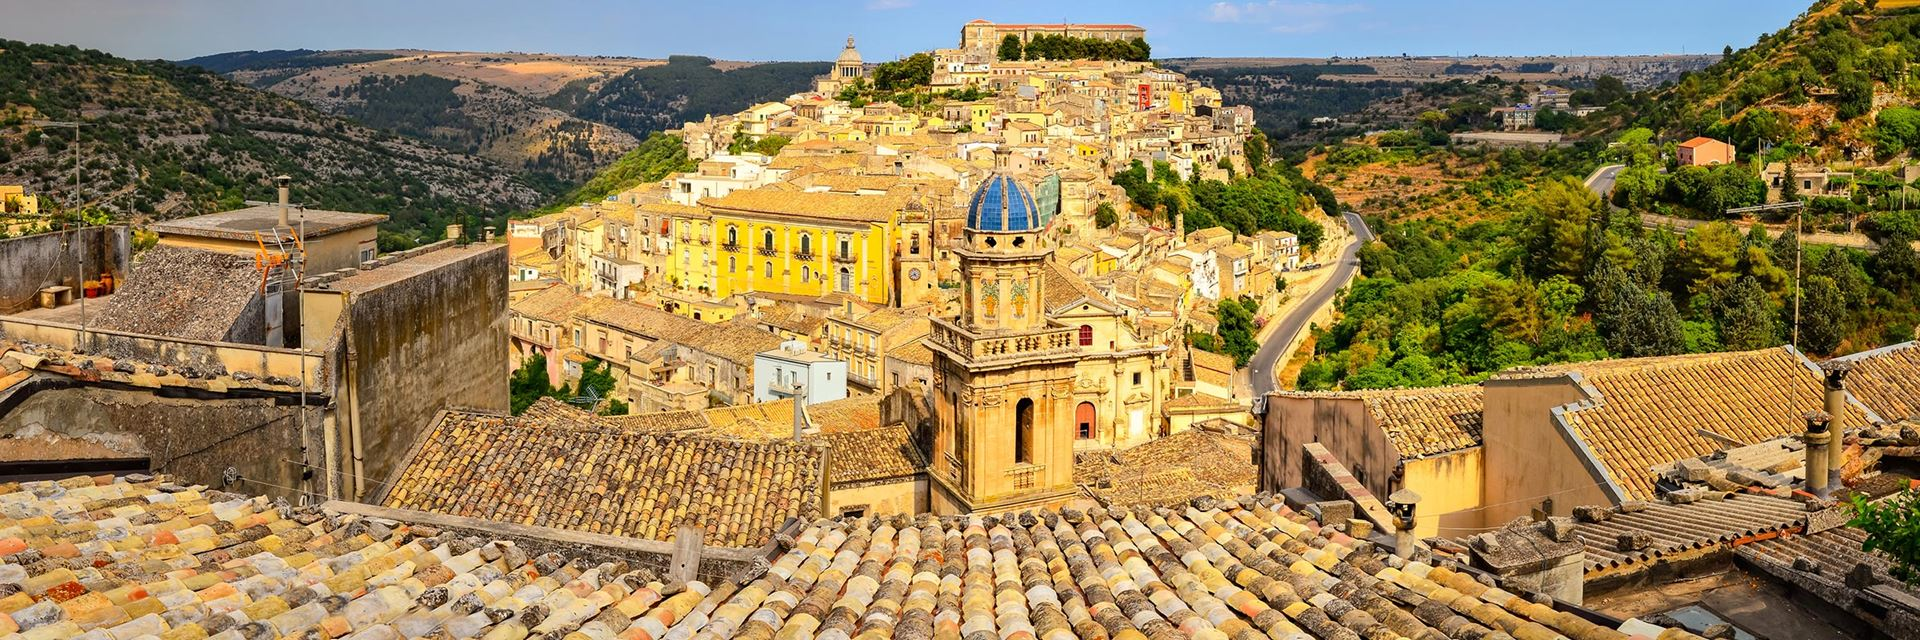 iStock469816075 Ragusa in Sicily letterbox